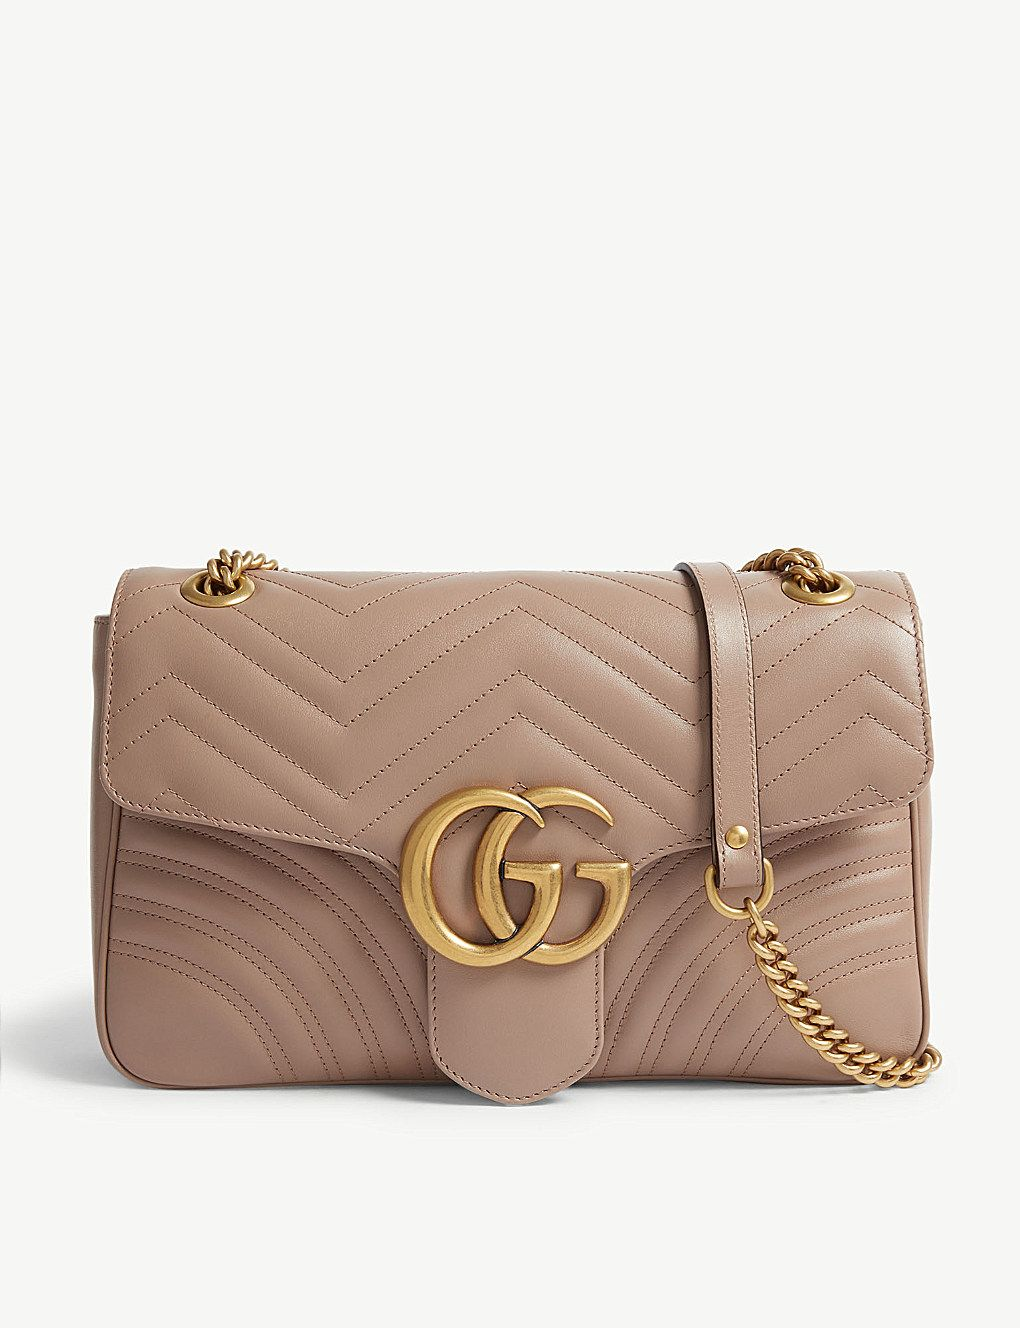 5b733303cbbf31 GUCCI GG Marmont leather shoulder bag in 2019 | Handbags | Bags ...